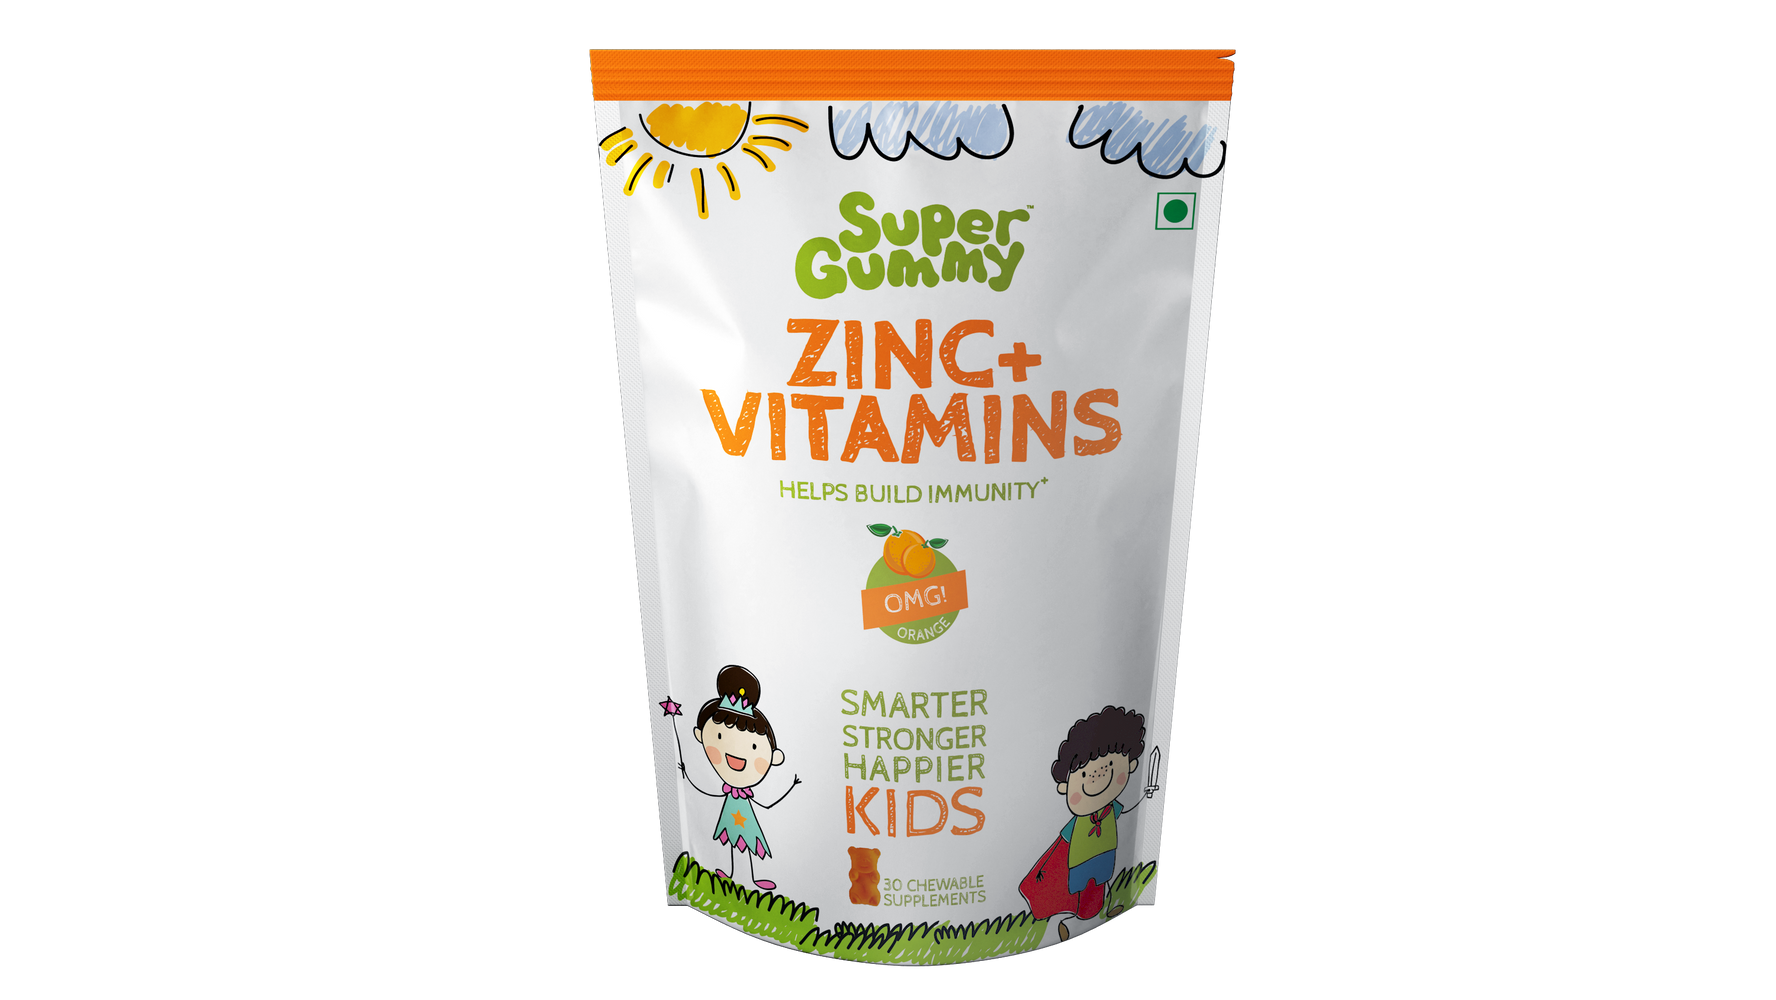 Super Gummy Zinc + Vitamins - 30 Chewable Supplements